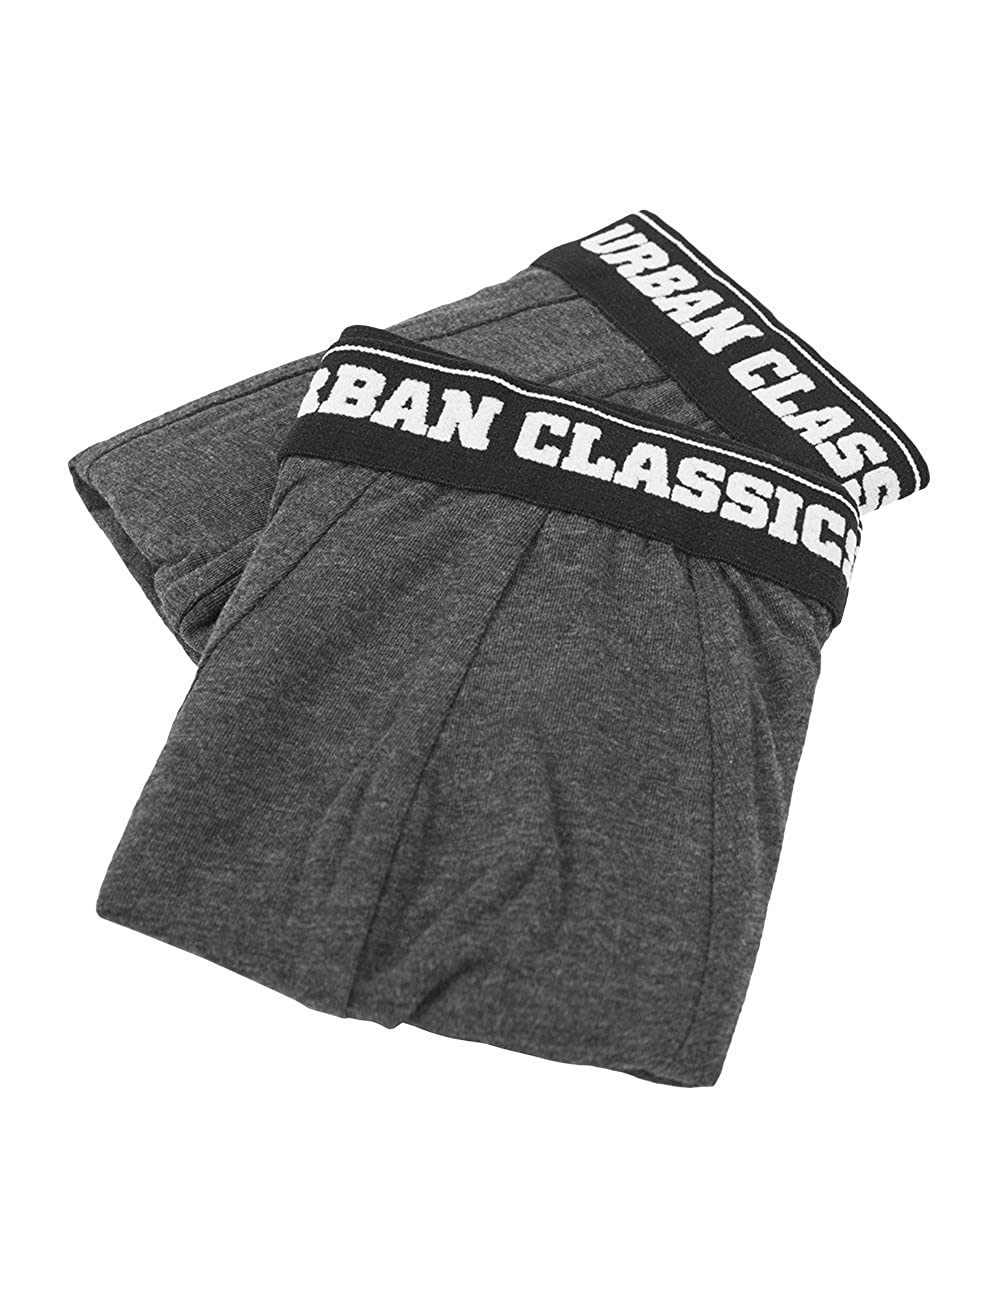 Urban Classics Mens Boxer Shorts Double Pack Hombre